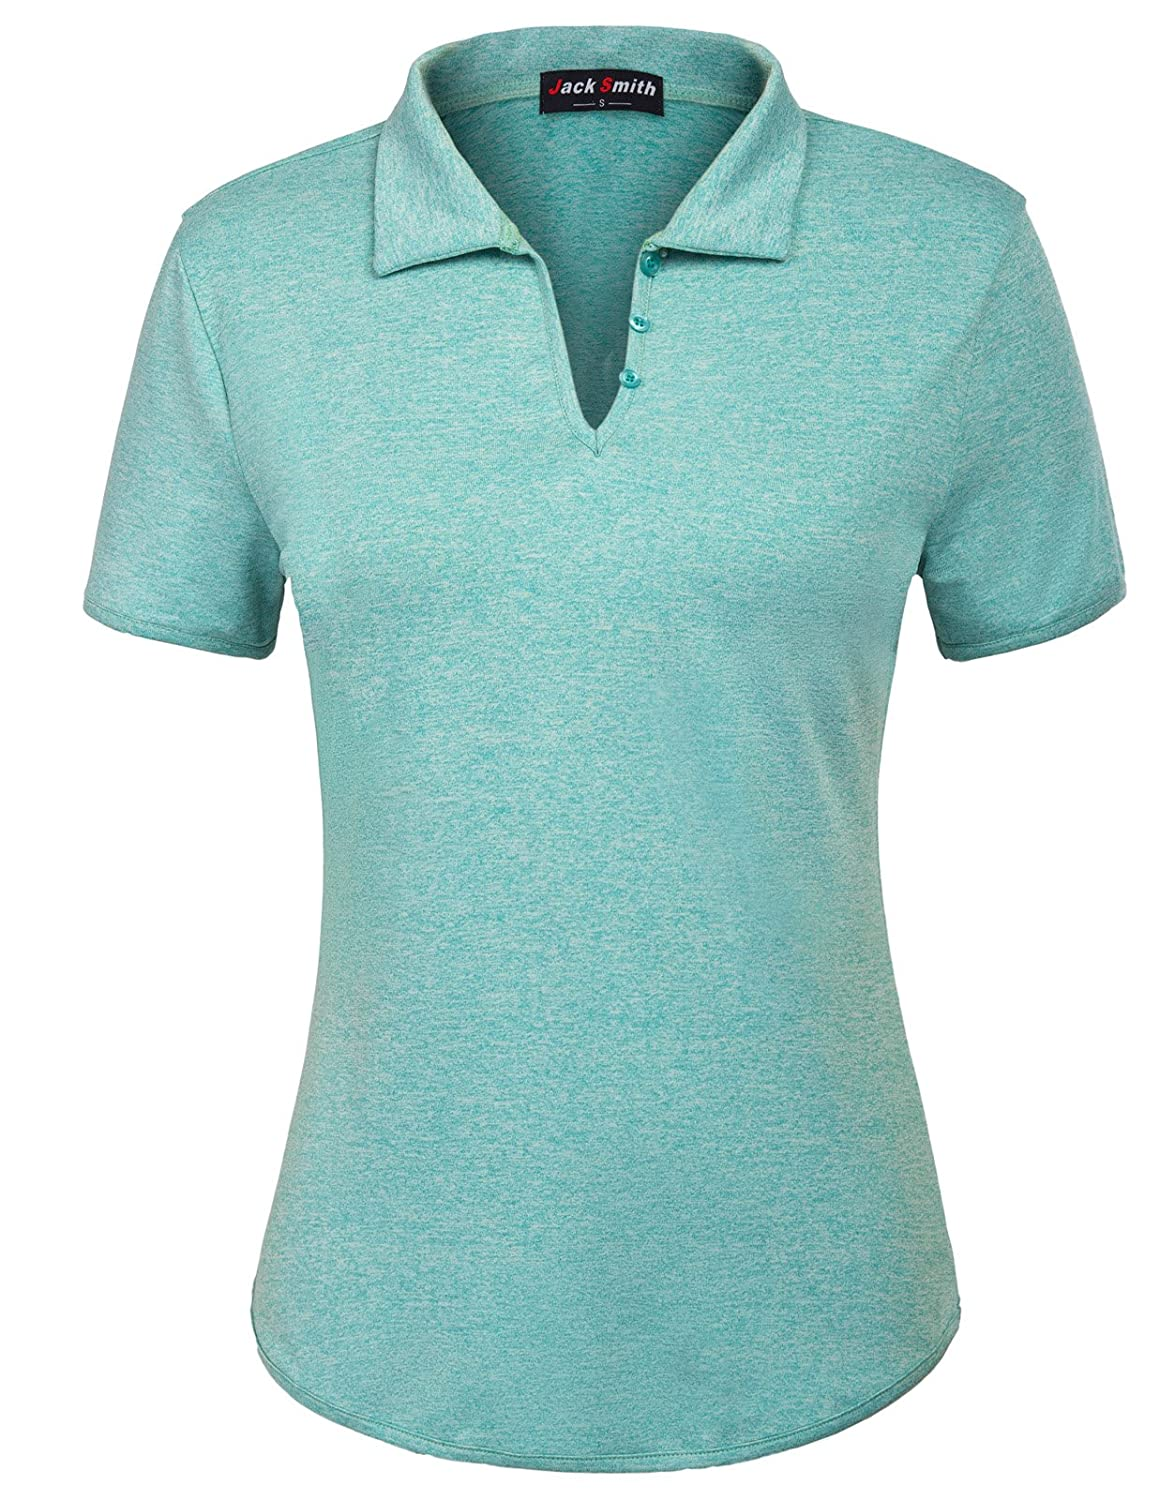 bluee Jack Smith Women's Short Sleeve Sports MoistureWicking Polo Shirt TShirt Tops